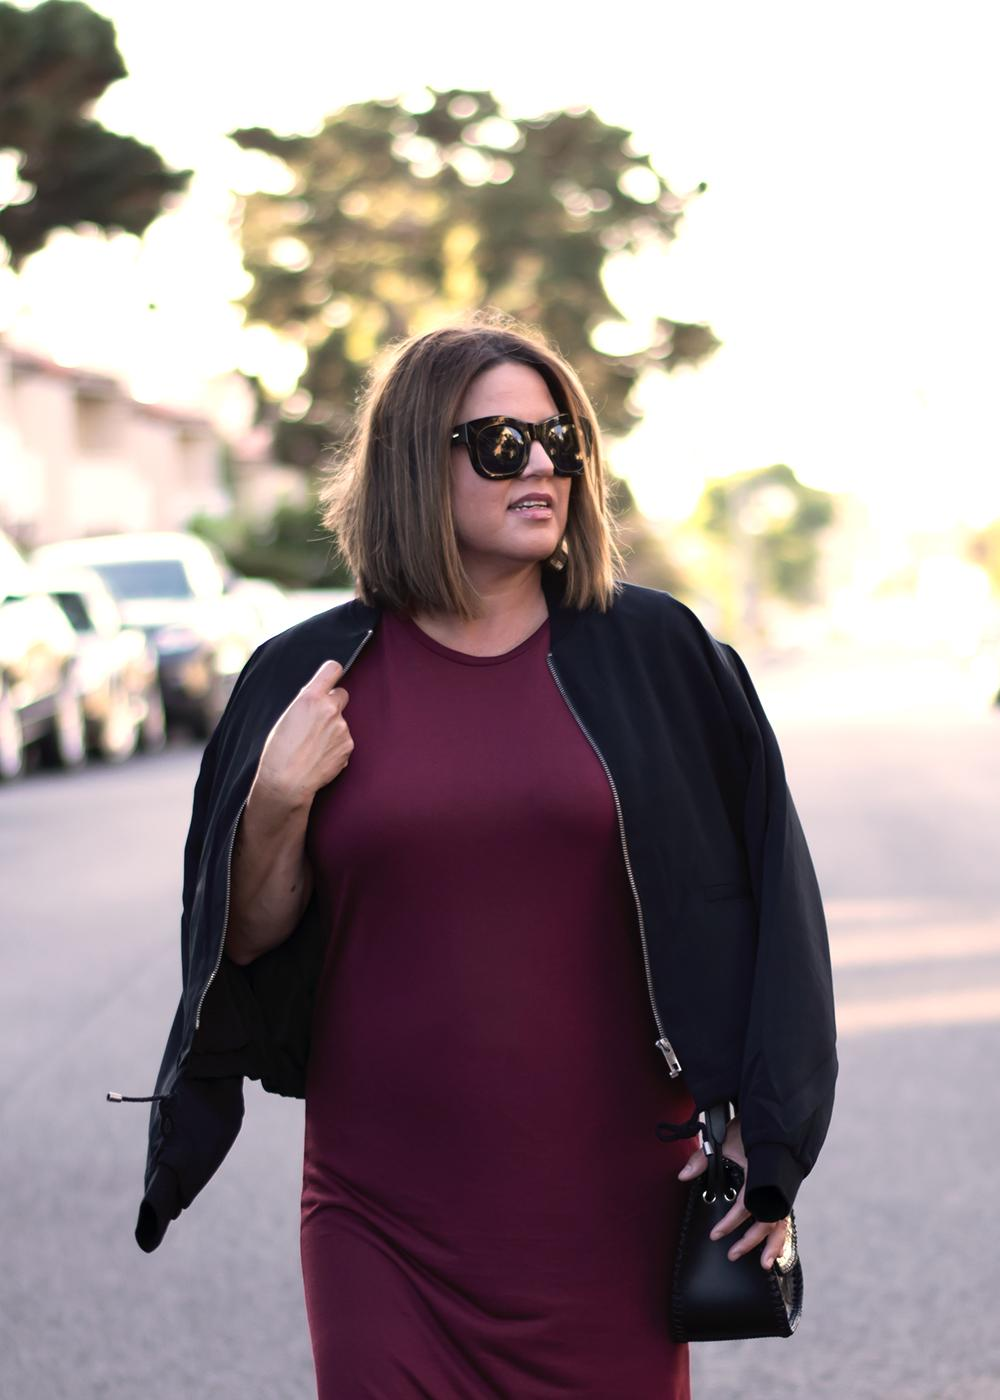 casual-outfit-los-angeles-fashion-street-style-blogger-personal-stylist-0588